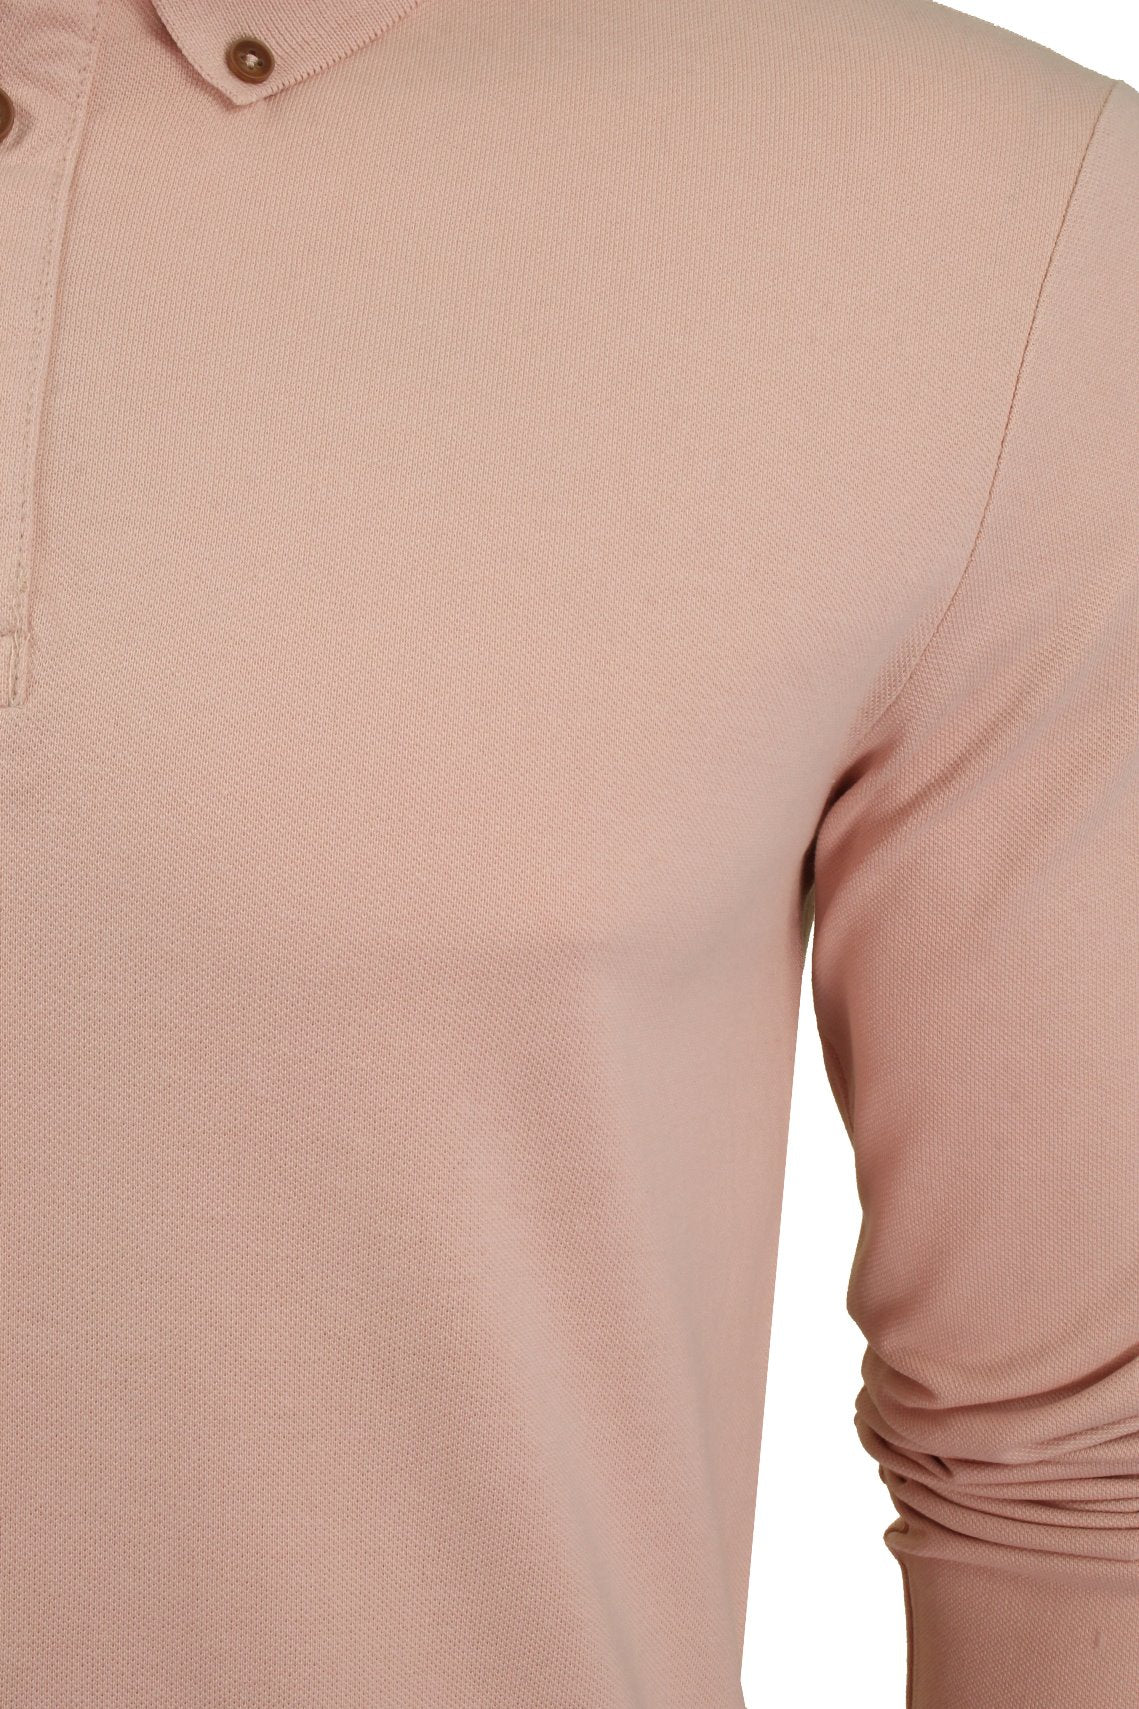 Mens Polo T-Shirt by Xact Pique Long Sleeved_02_XP1003_Summer Pink